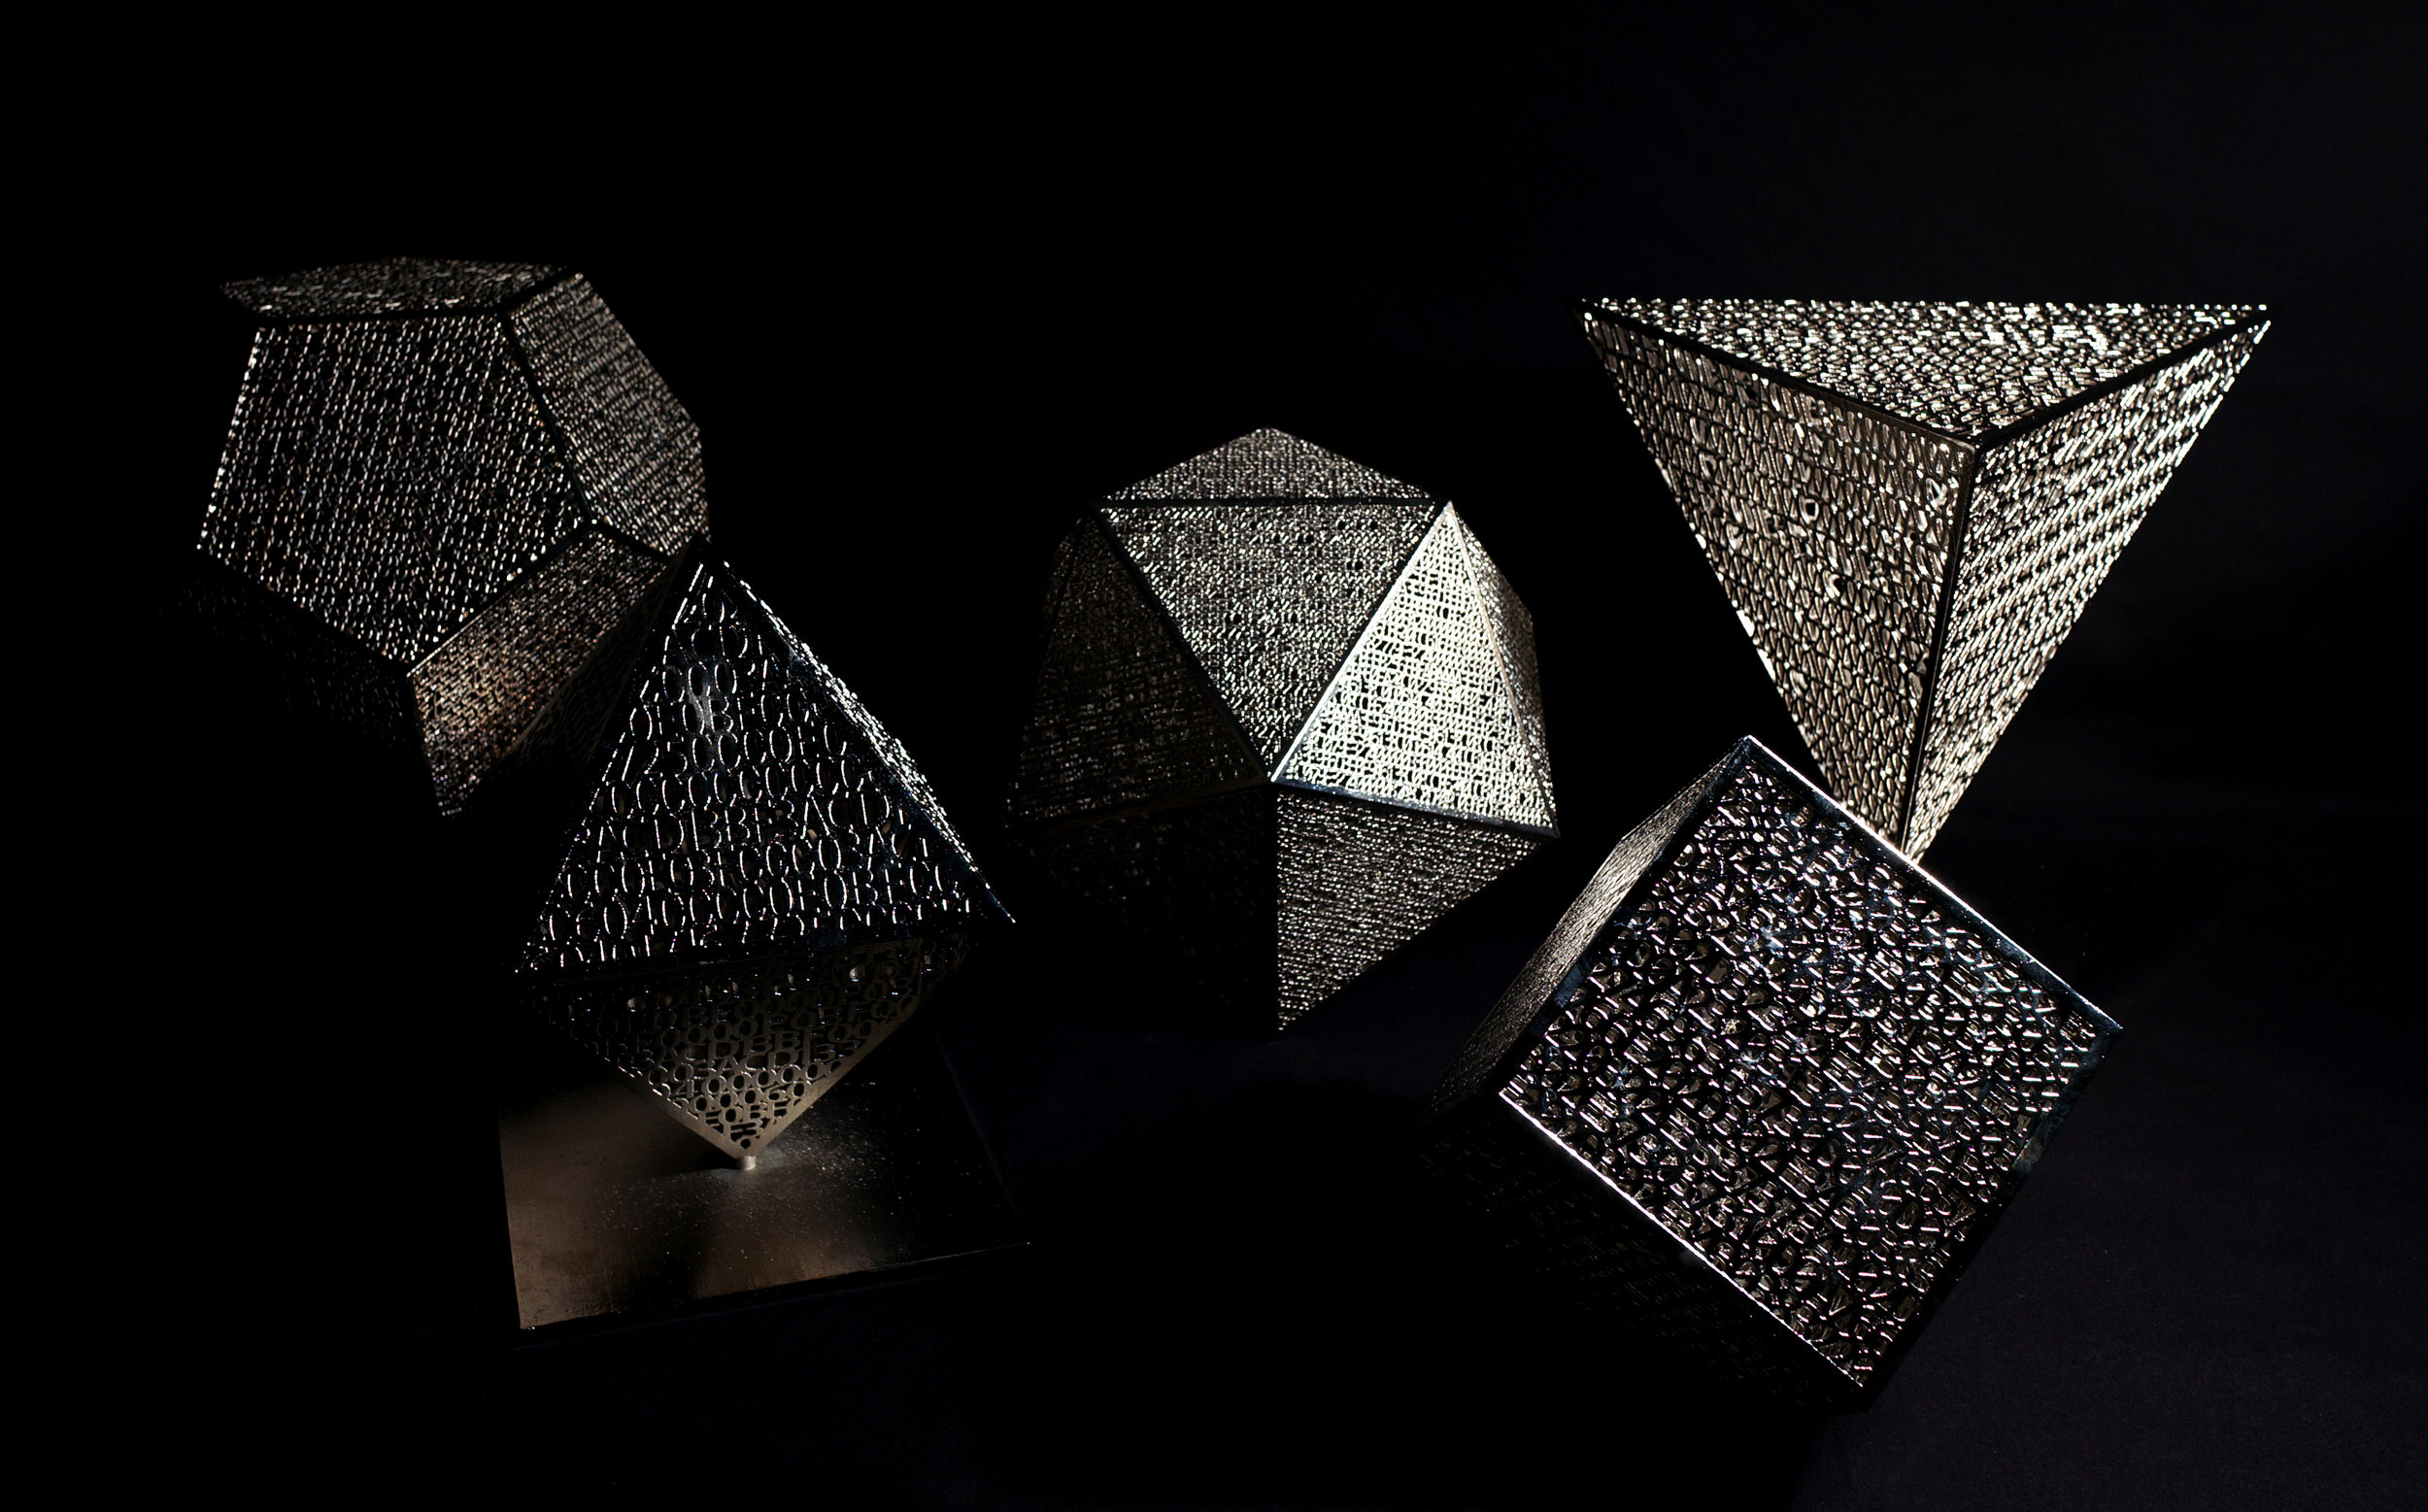 Platonic Solids, nickel plated 3D prints, various sizes